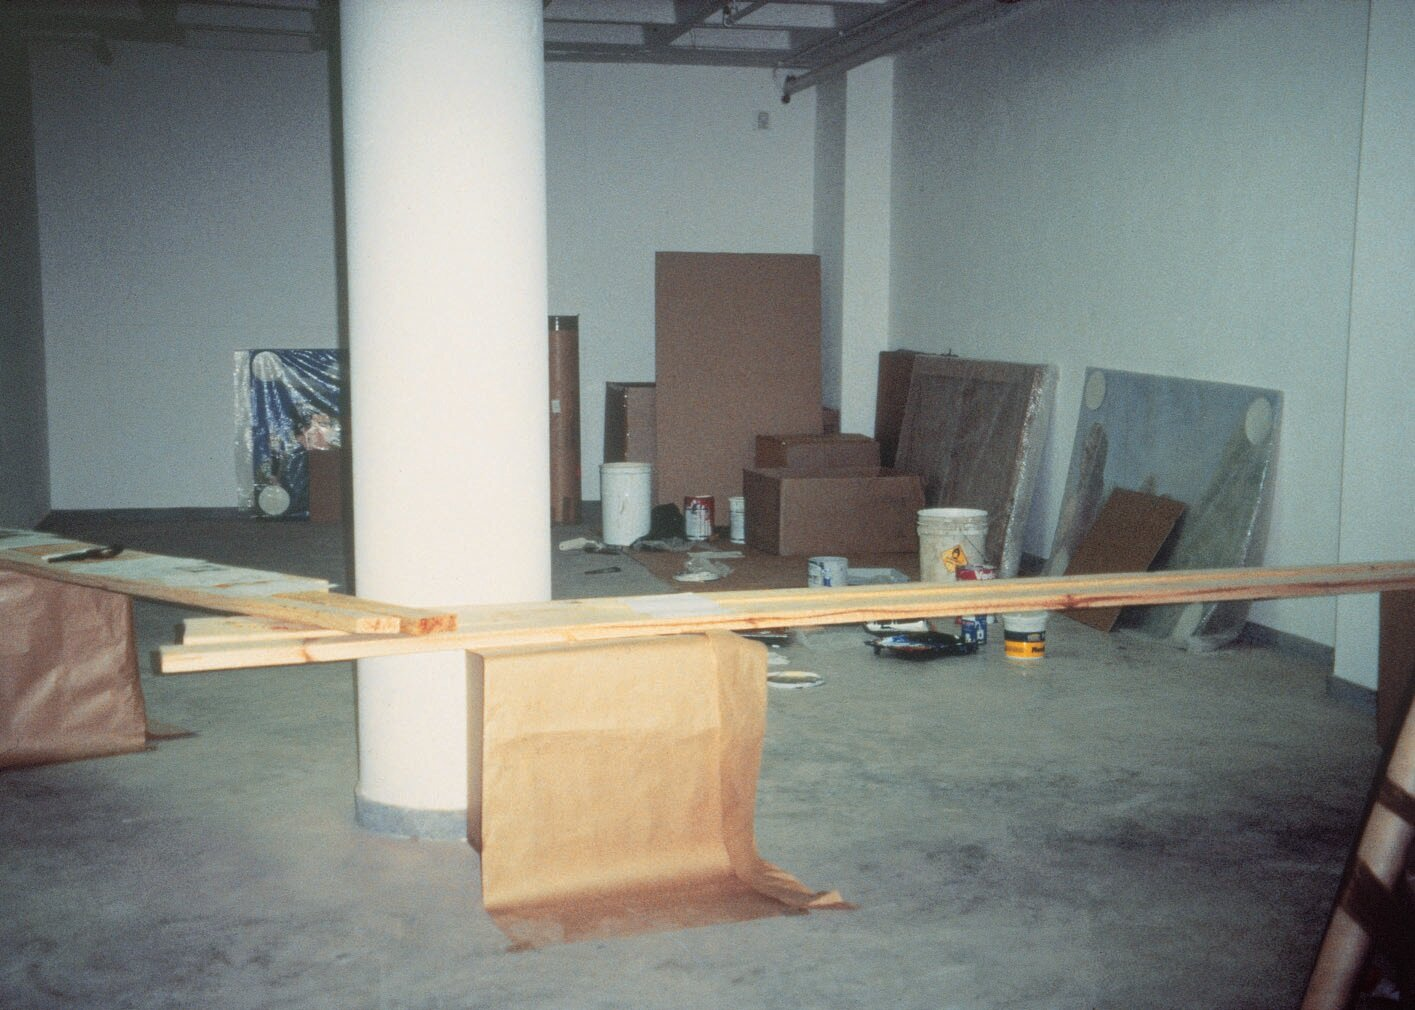 View-of-installation-South-African-Biennale-Johannesburg-1995-Photo-by-Emilia-Kabakov.jpg